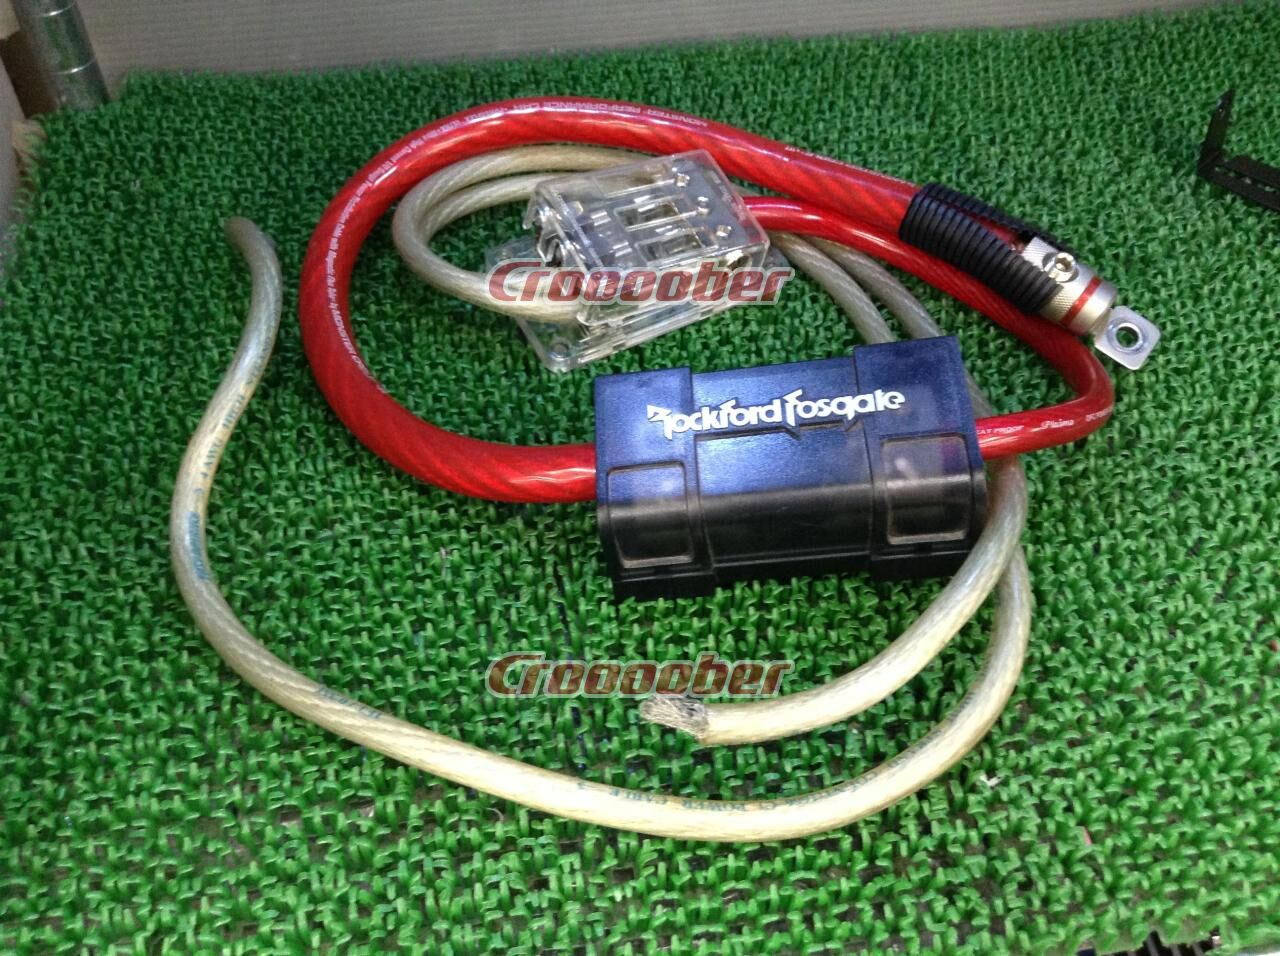 rockford fuse box power cable cables croooober rockford fuse box power cable